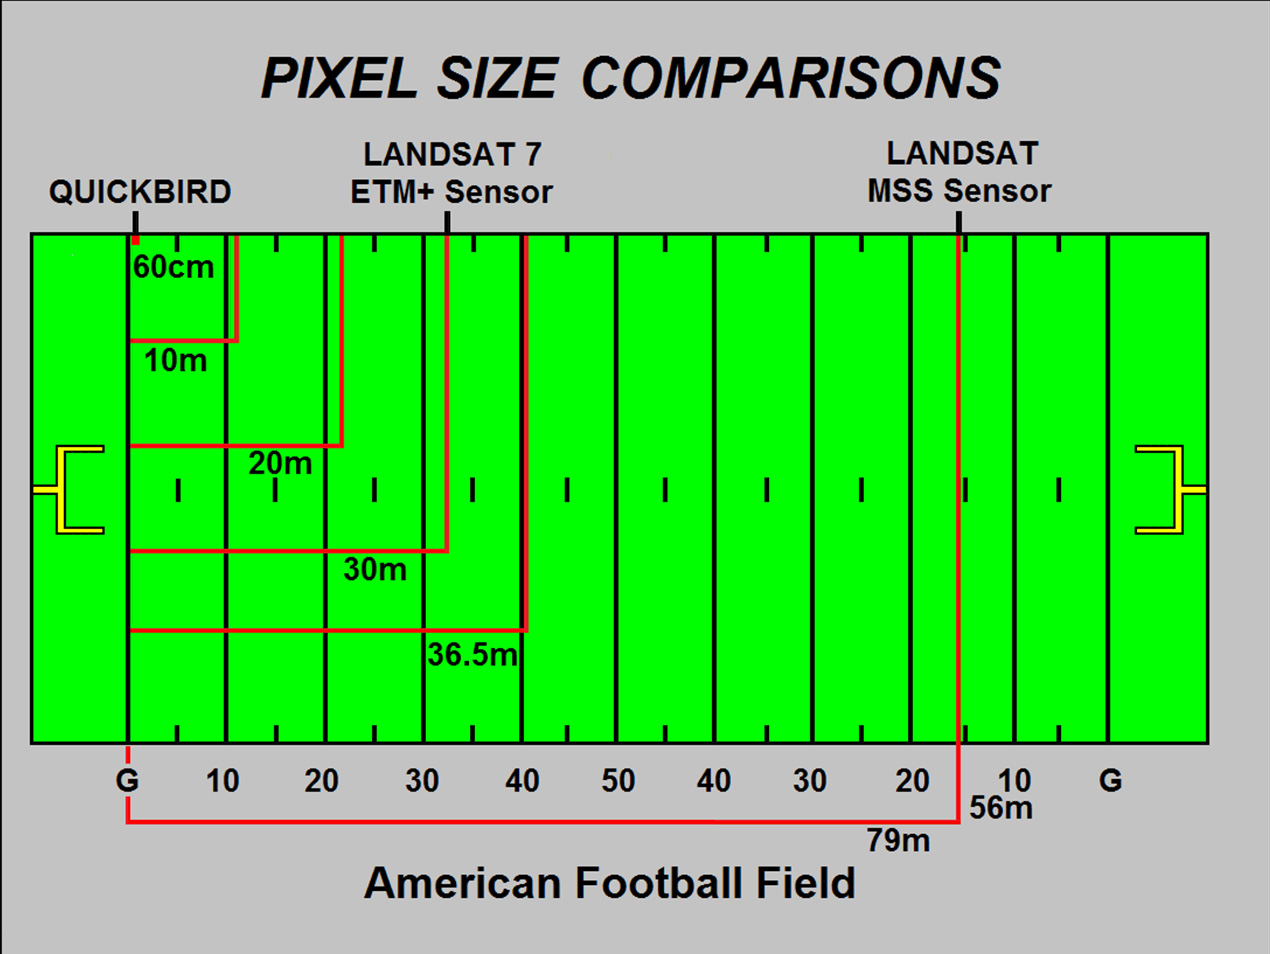 Nfl football field dimensions in meters maillot de foot pas cher nfl football positions diagram guitar effects pedals wiring figure20720football20field pooptronica